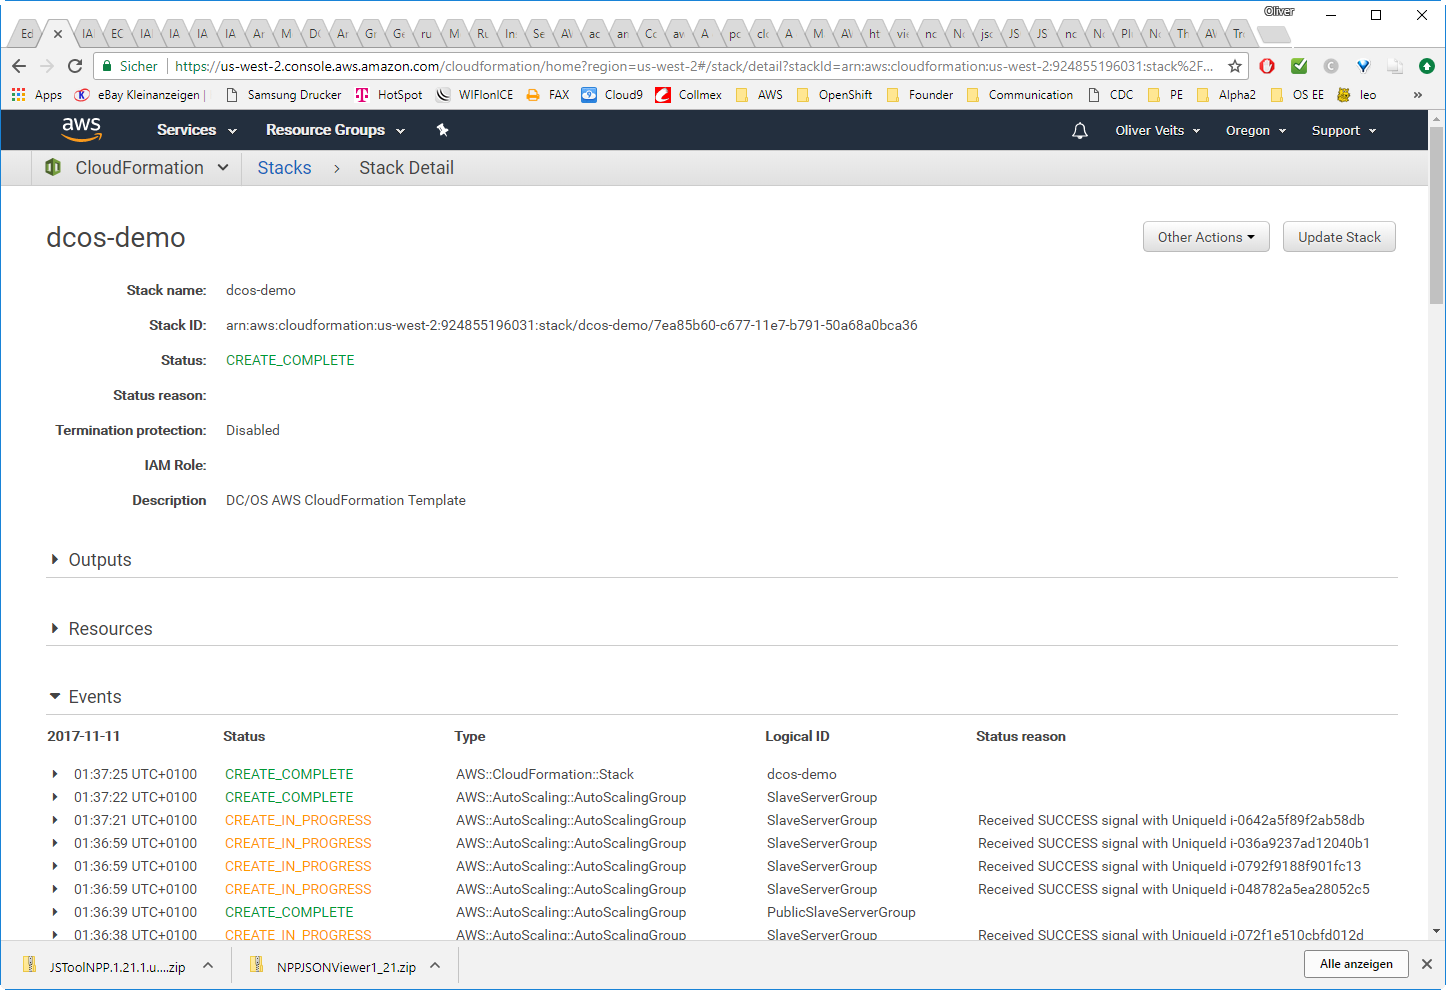 Getting Started with DC/OS on AWS -